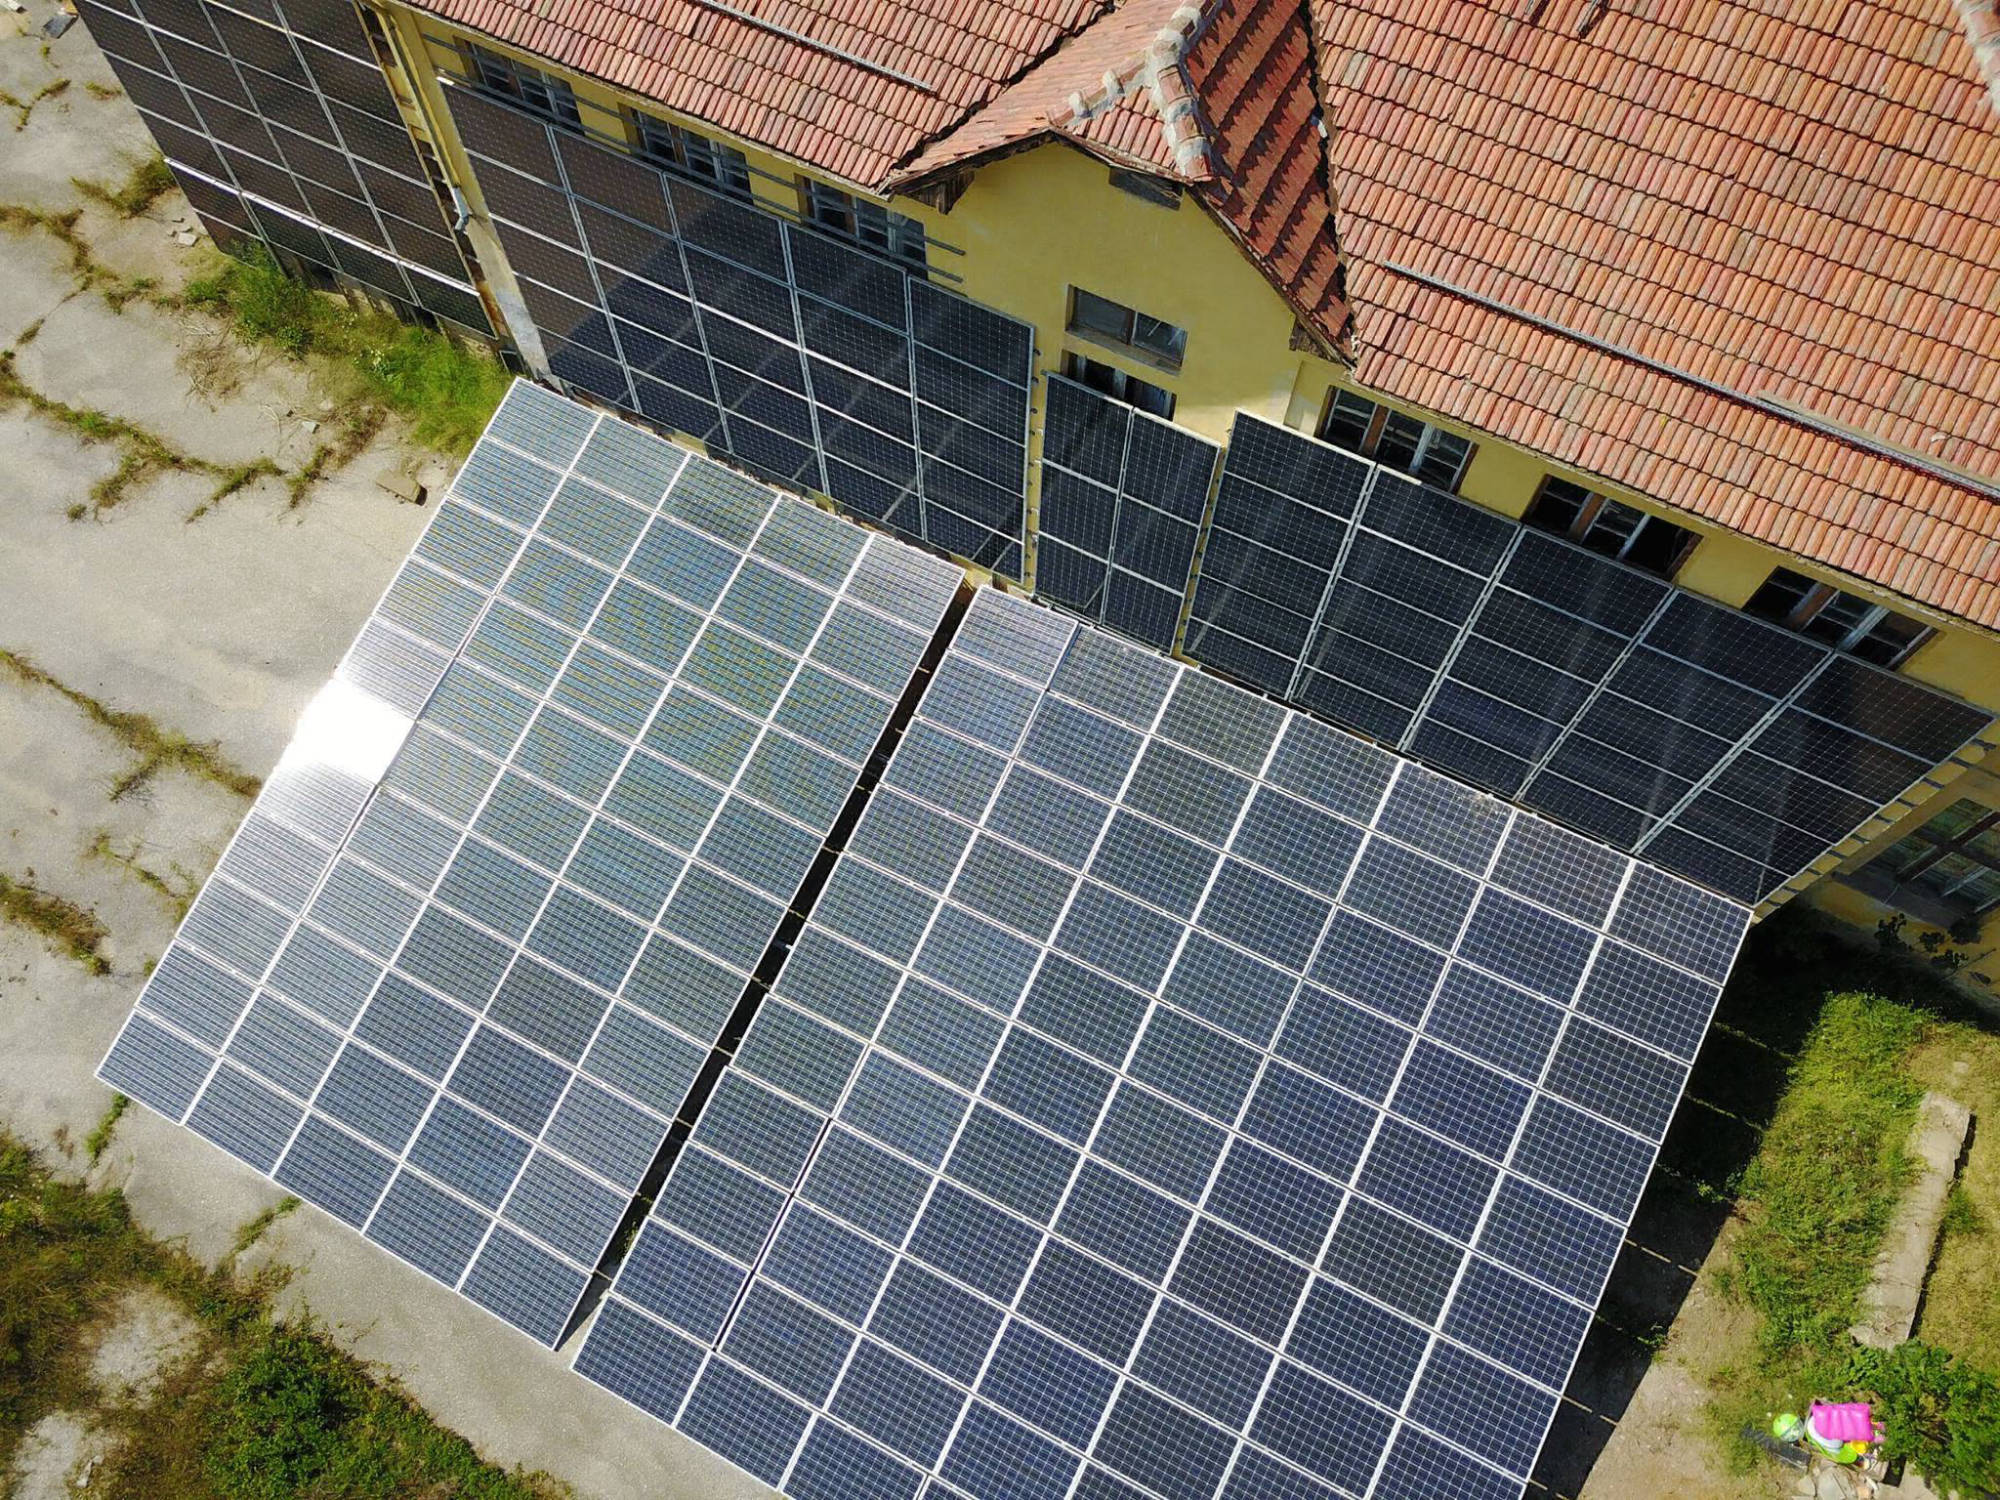 60 kW grid-tied plant on school facade | Bulgaria